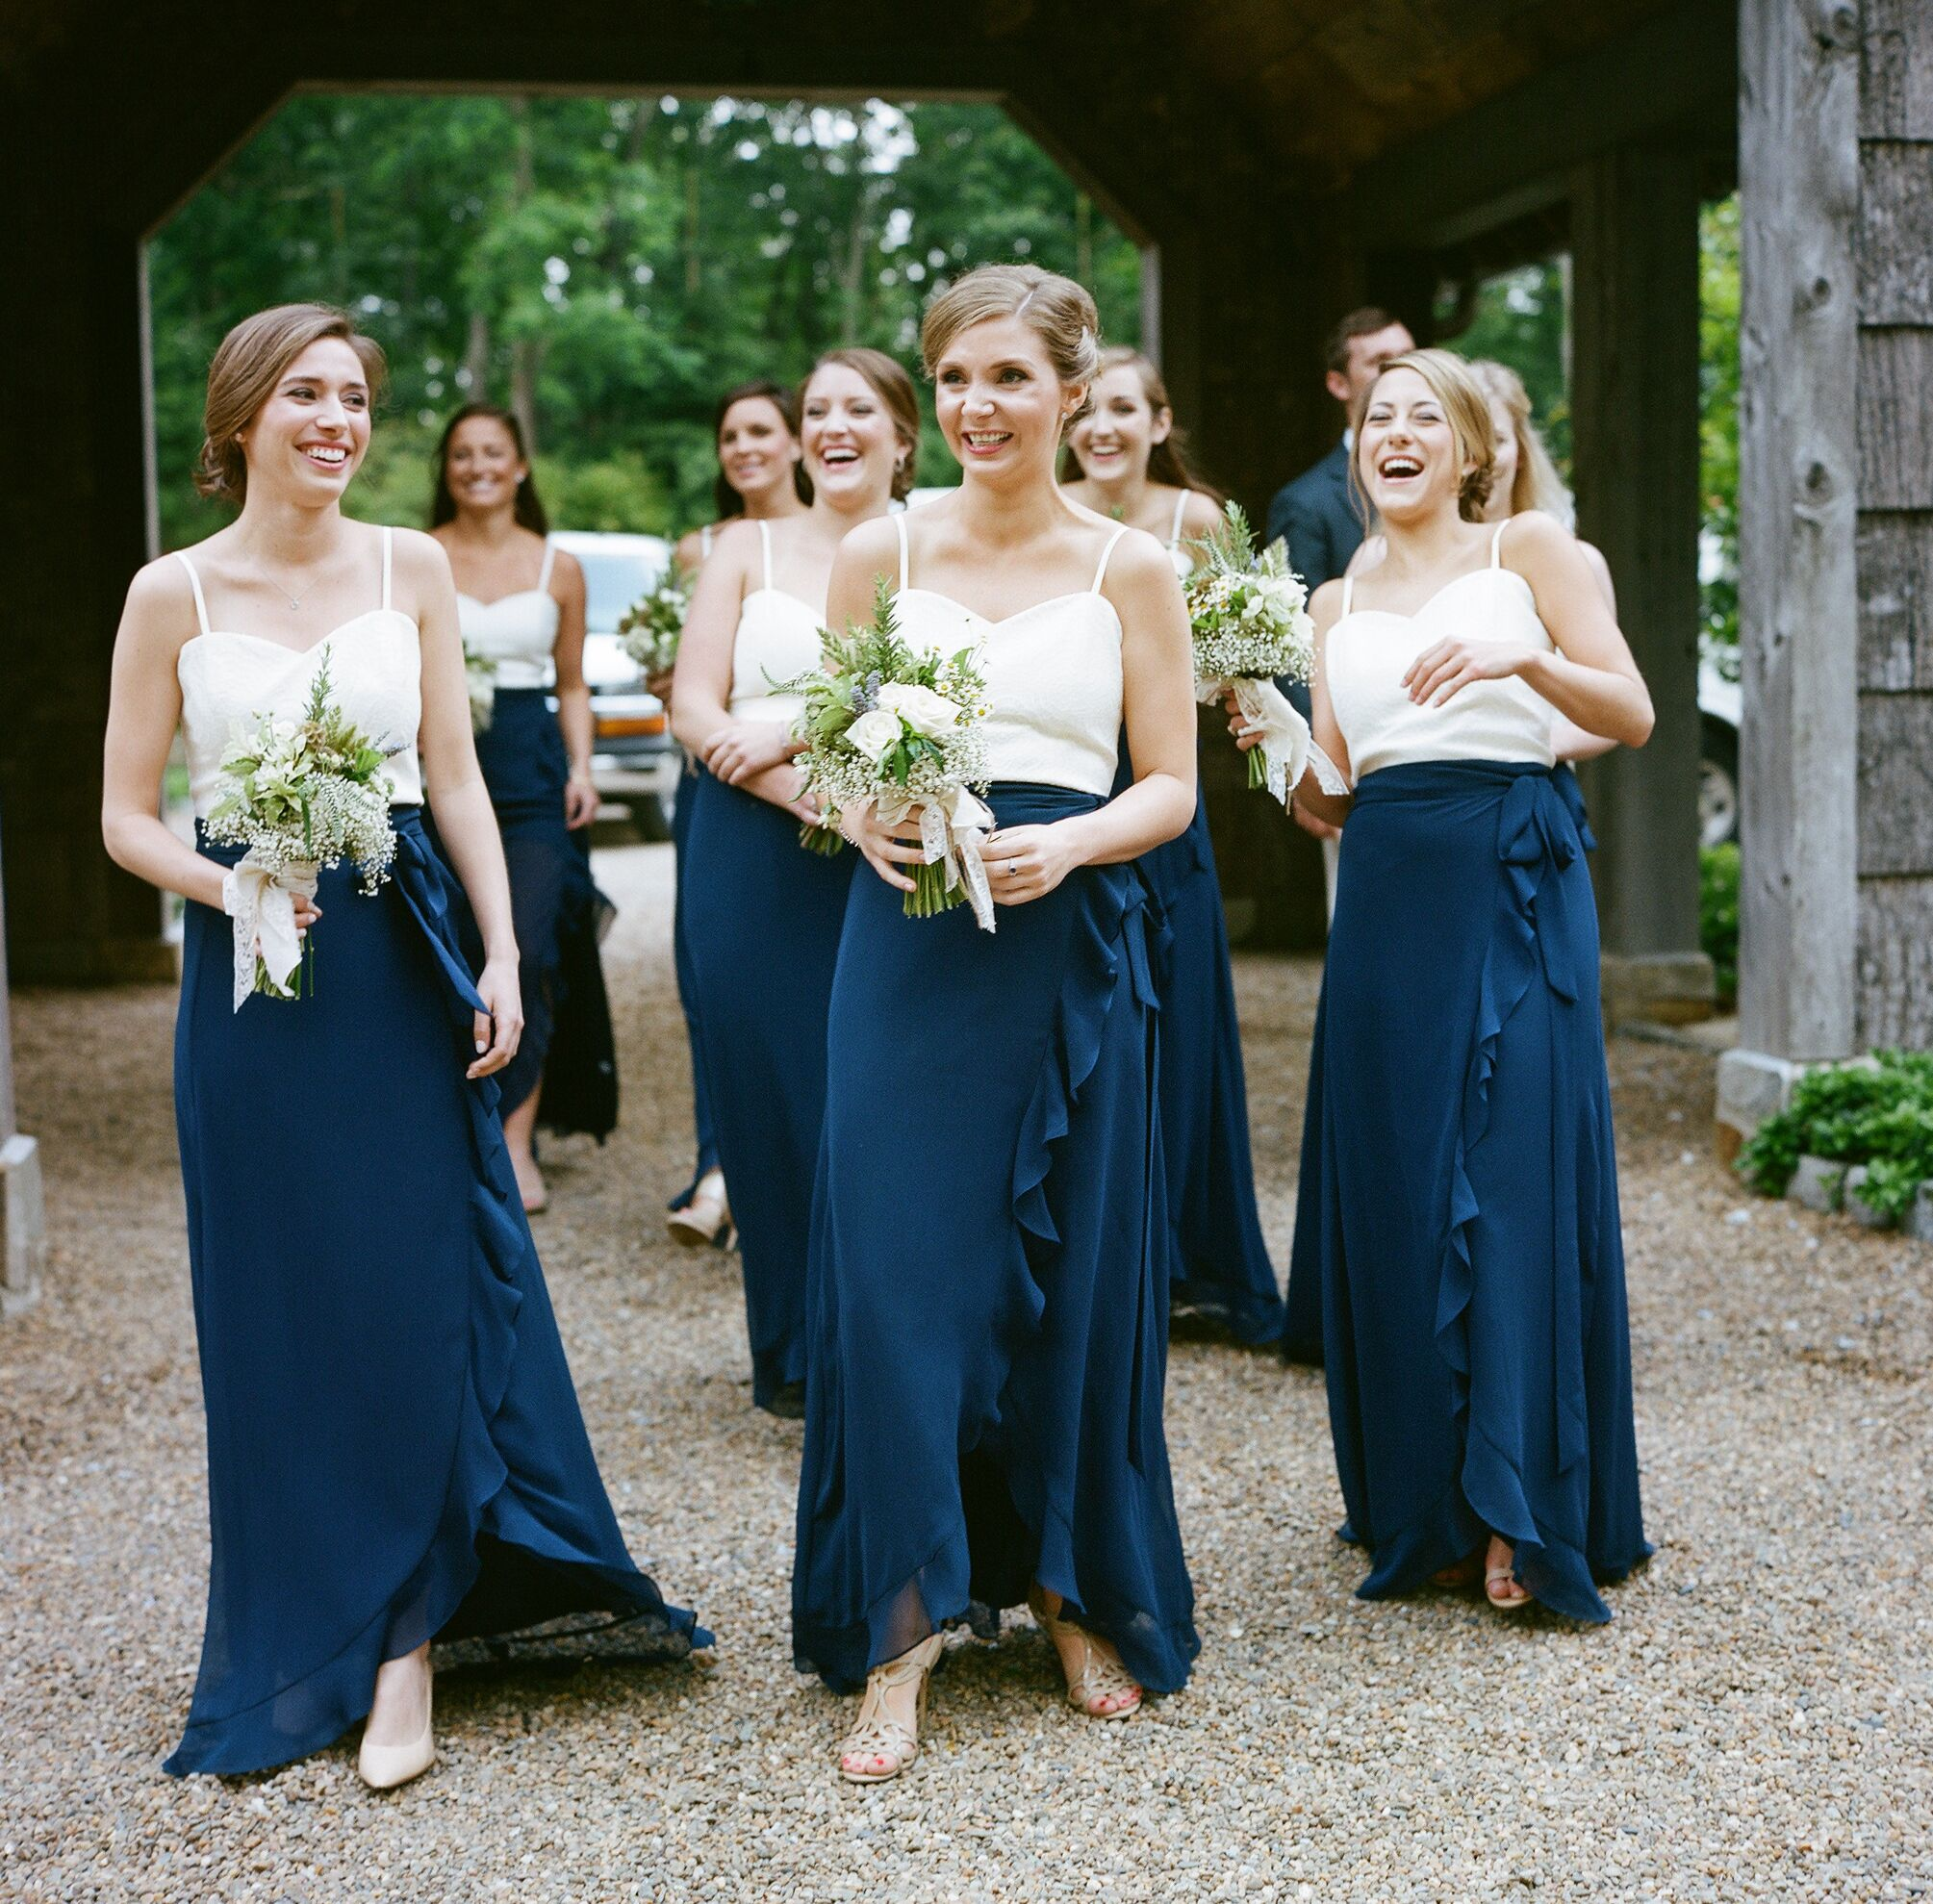 Blue bridesmaid dresses two piece navy and white joanna august bridesmaid dresses ombrellifo Images